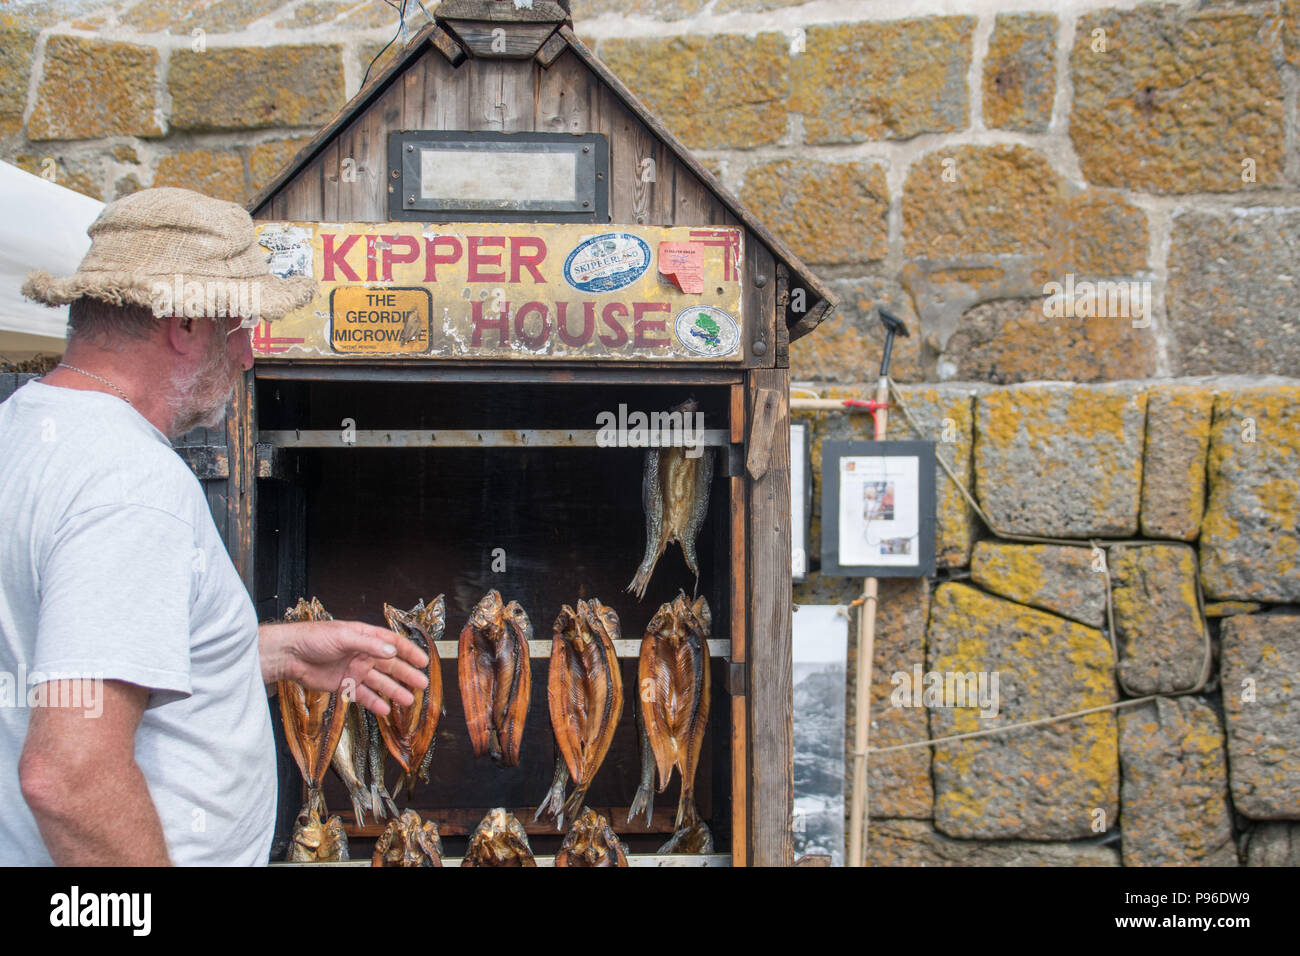 Smoked Kippers on sale in a small wooden smoking house - Stock Image